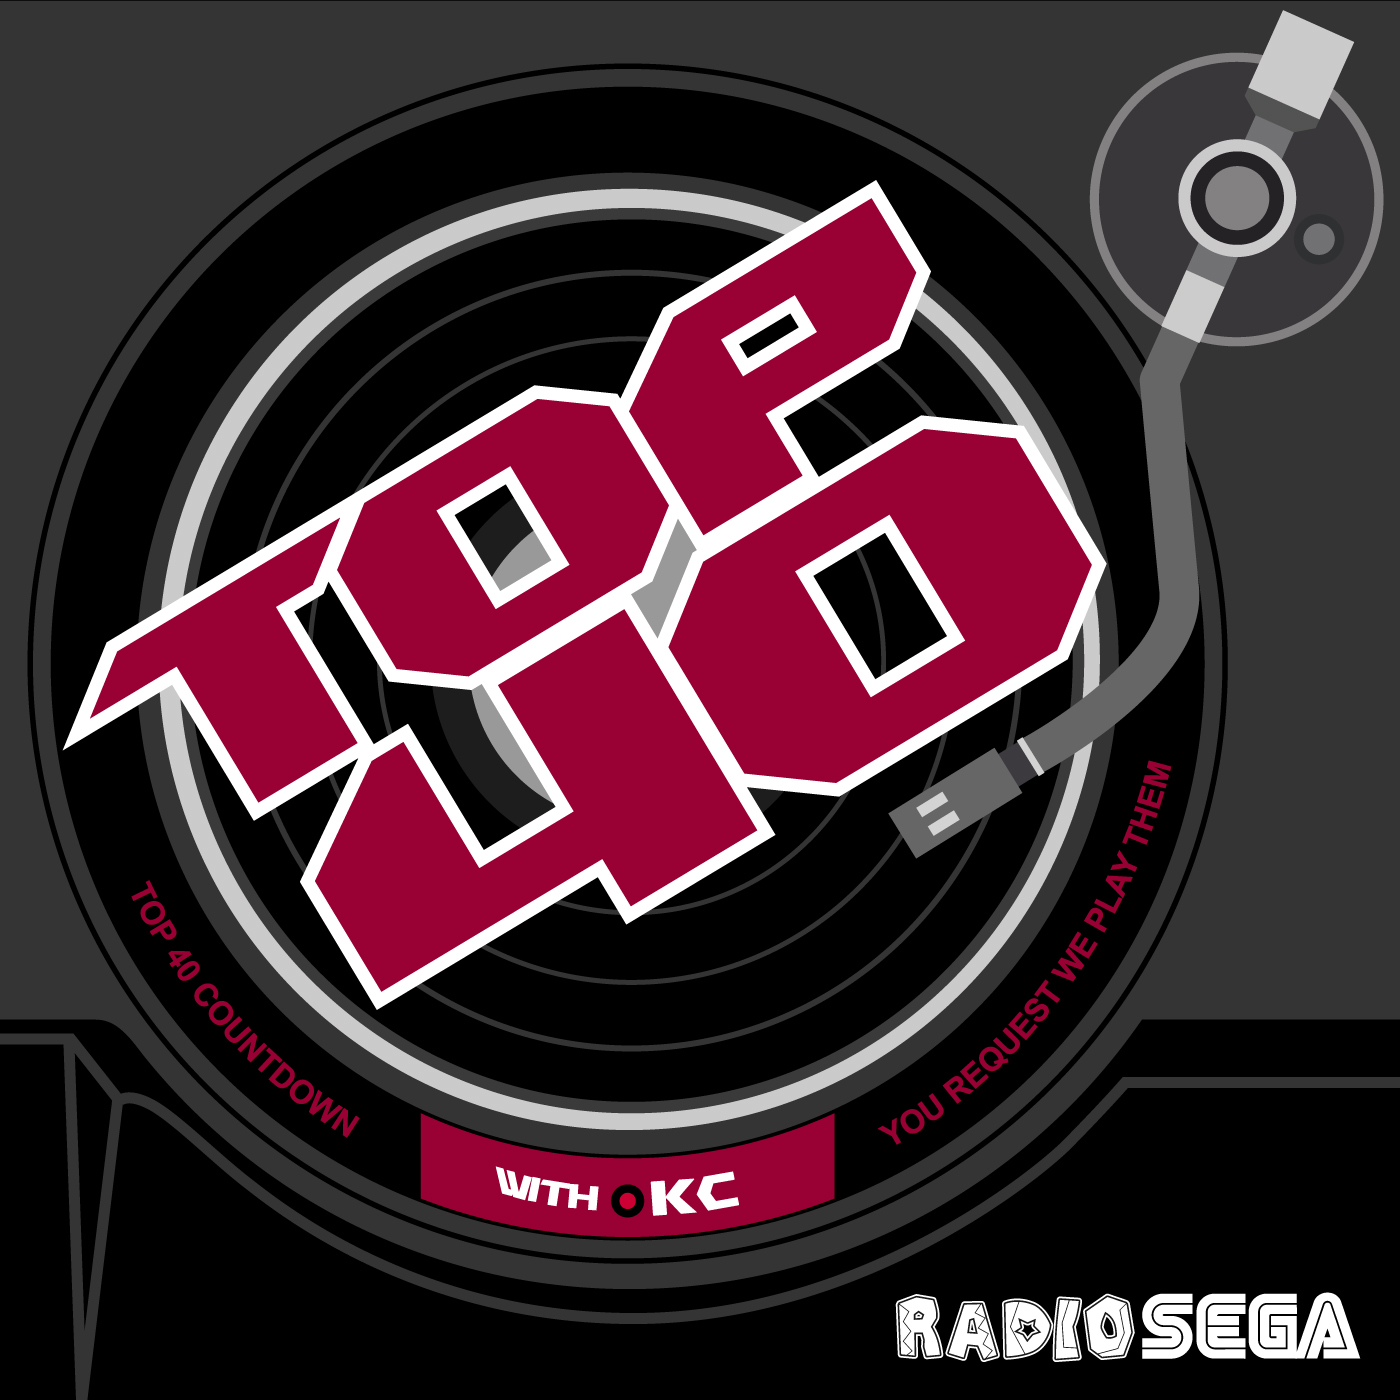 RadioSEGA's Top 40 Countdown